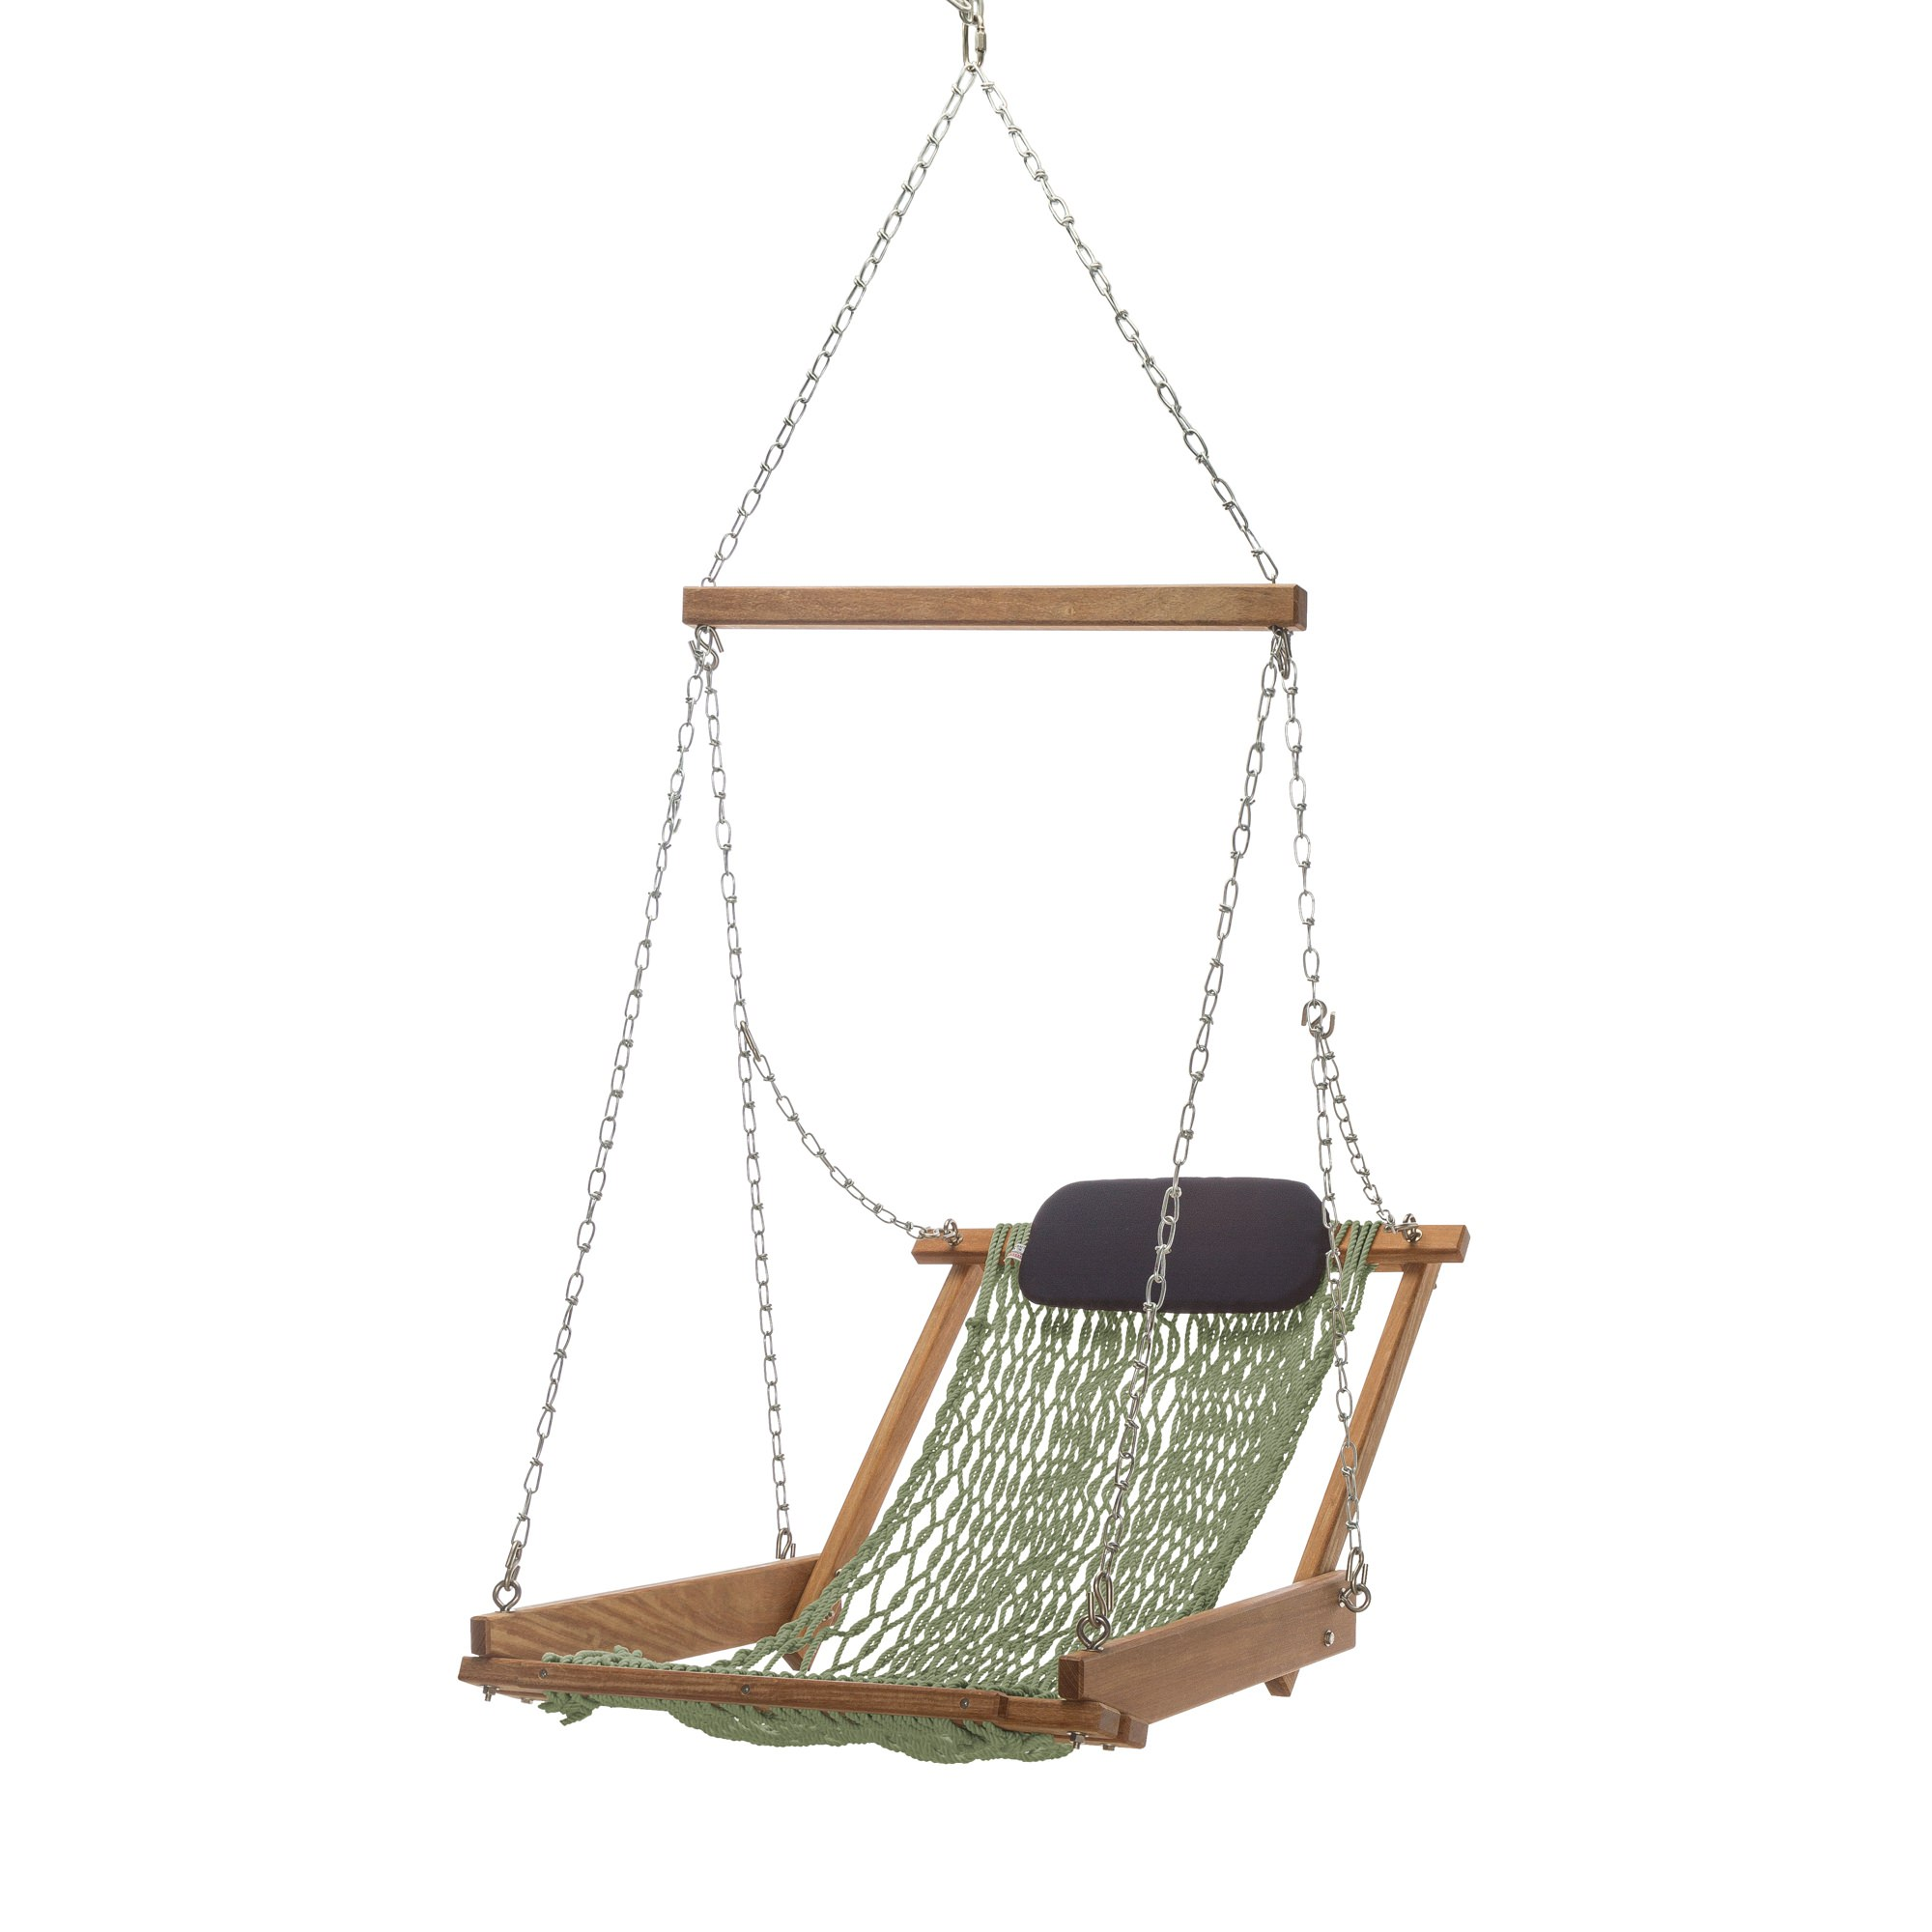 air chairs swing hammock steel stand porch is fresh sky of chair solid c loading image interior for unique